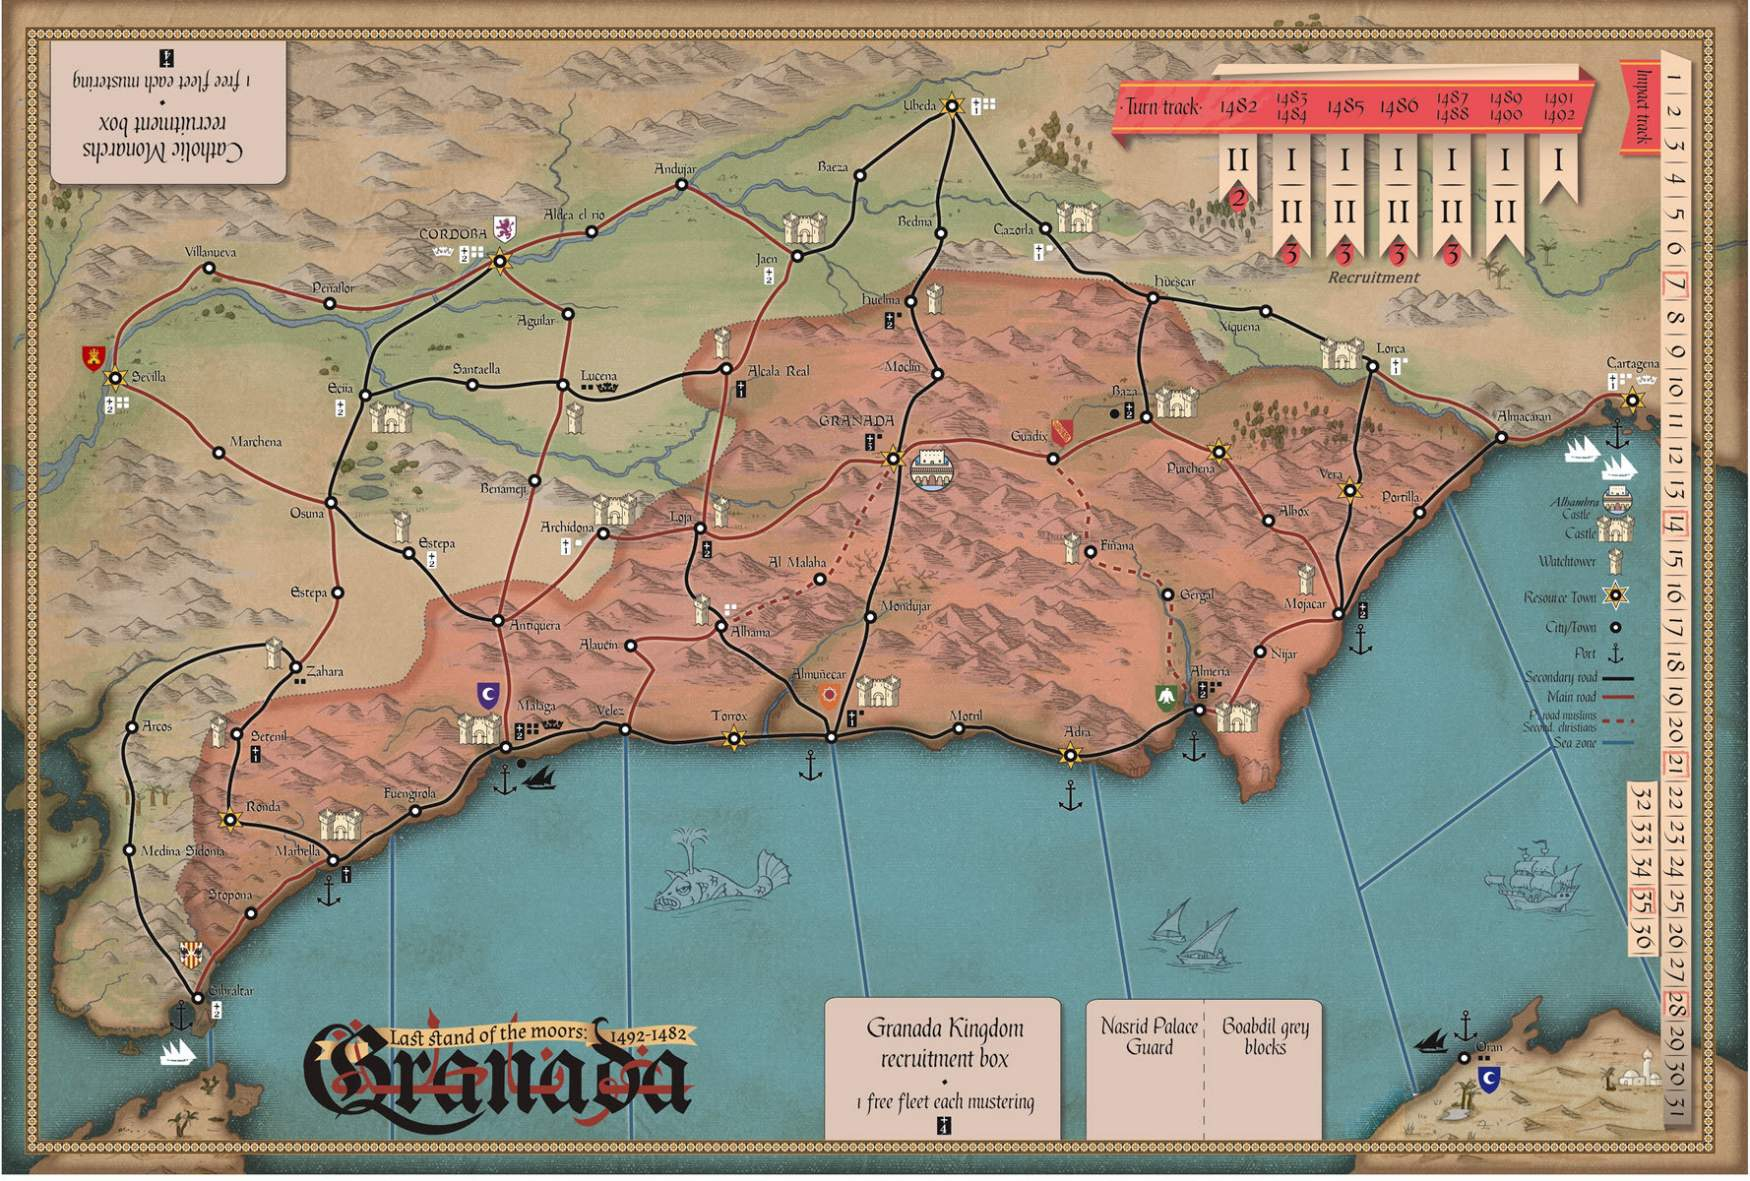 Granada: Last Stand of the Moors, 1482-1492